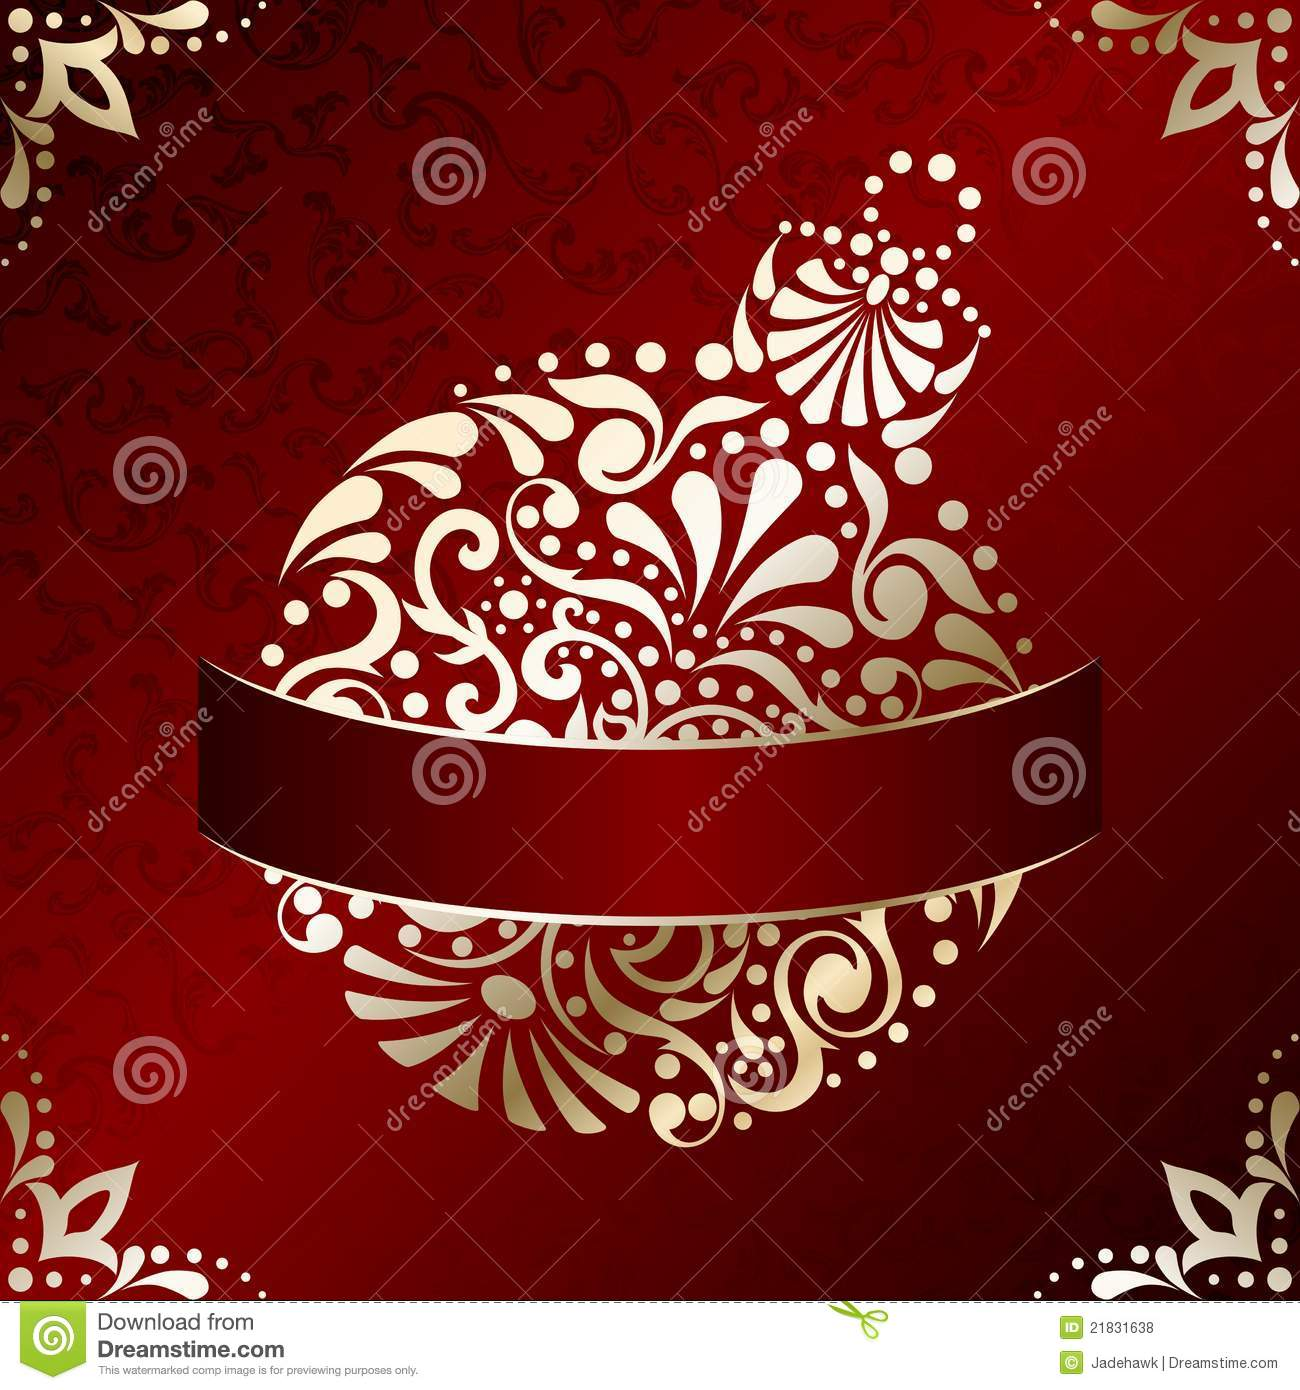 Elegant Christmas Card With Filigree Ornament Stock Vector ...